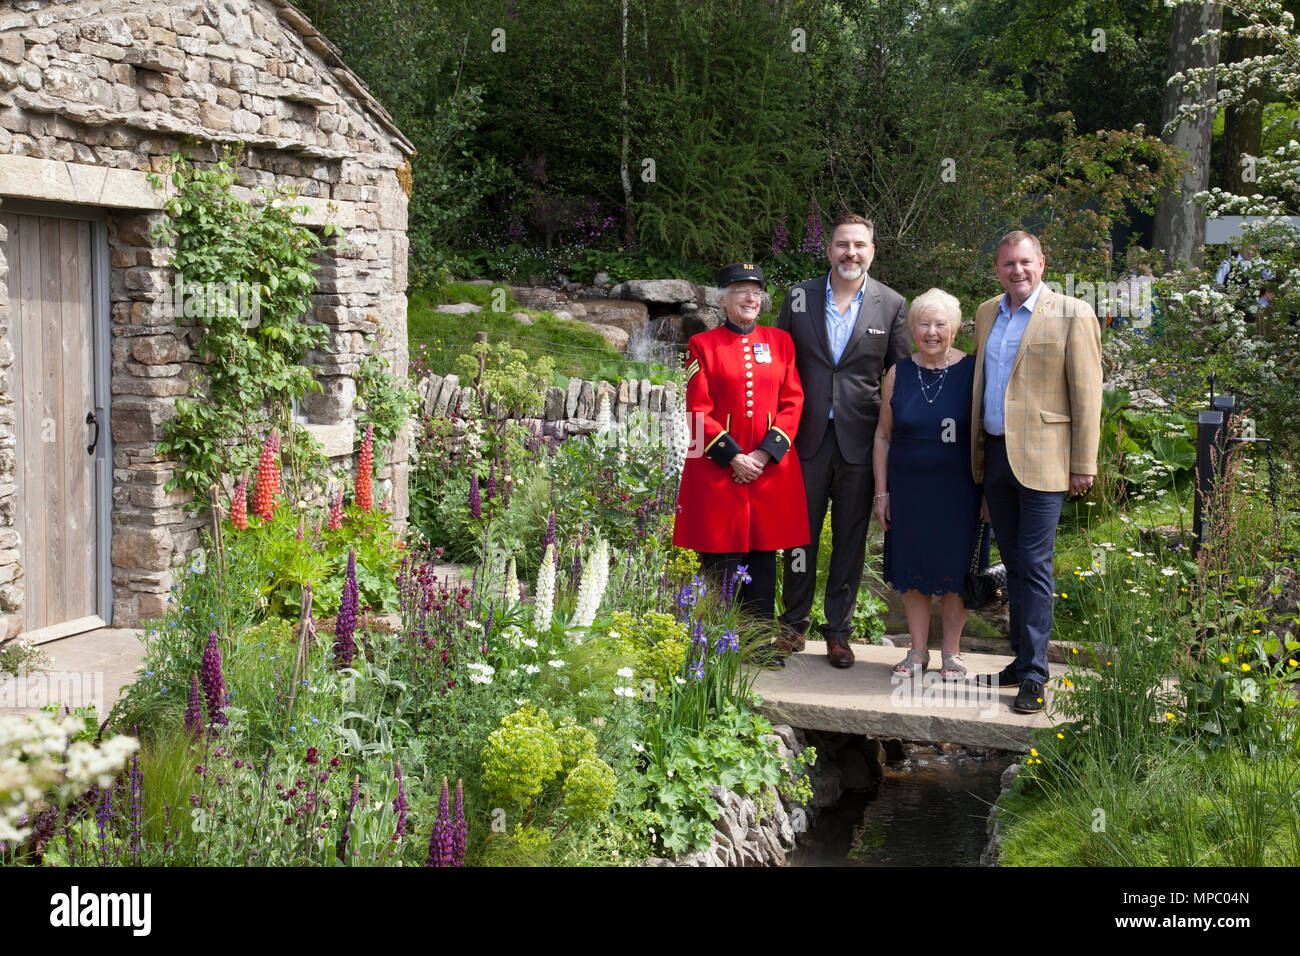 Chelsea, London, UK. 21st May, 2018. David Walliams, his mum Kathleen, Marjorie Cole, and Sir Gary Verity DL Chief Executive of WTY on the Welcome to Yorkshire garden at Chelsea Flower Show 2018, designed by Mark Gregory for Landformconsultants.co.uk Credit: Jenny Lilly/Alamy Live News - Stock Image